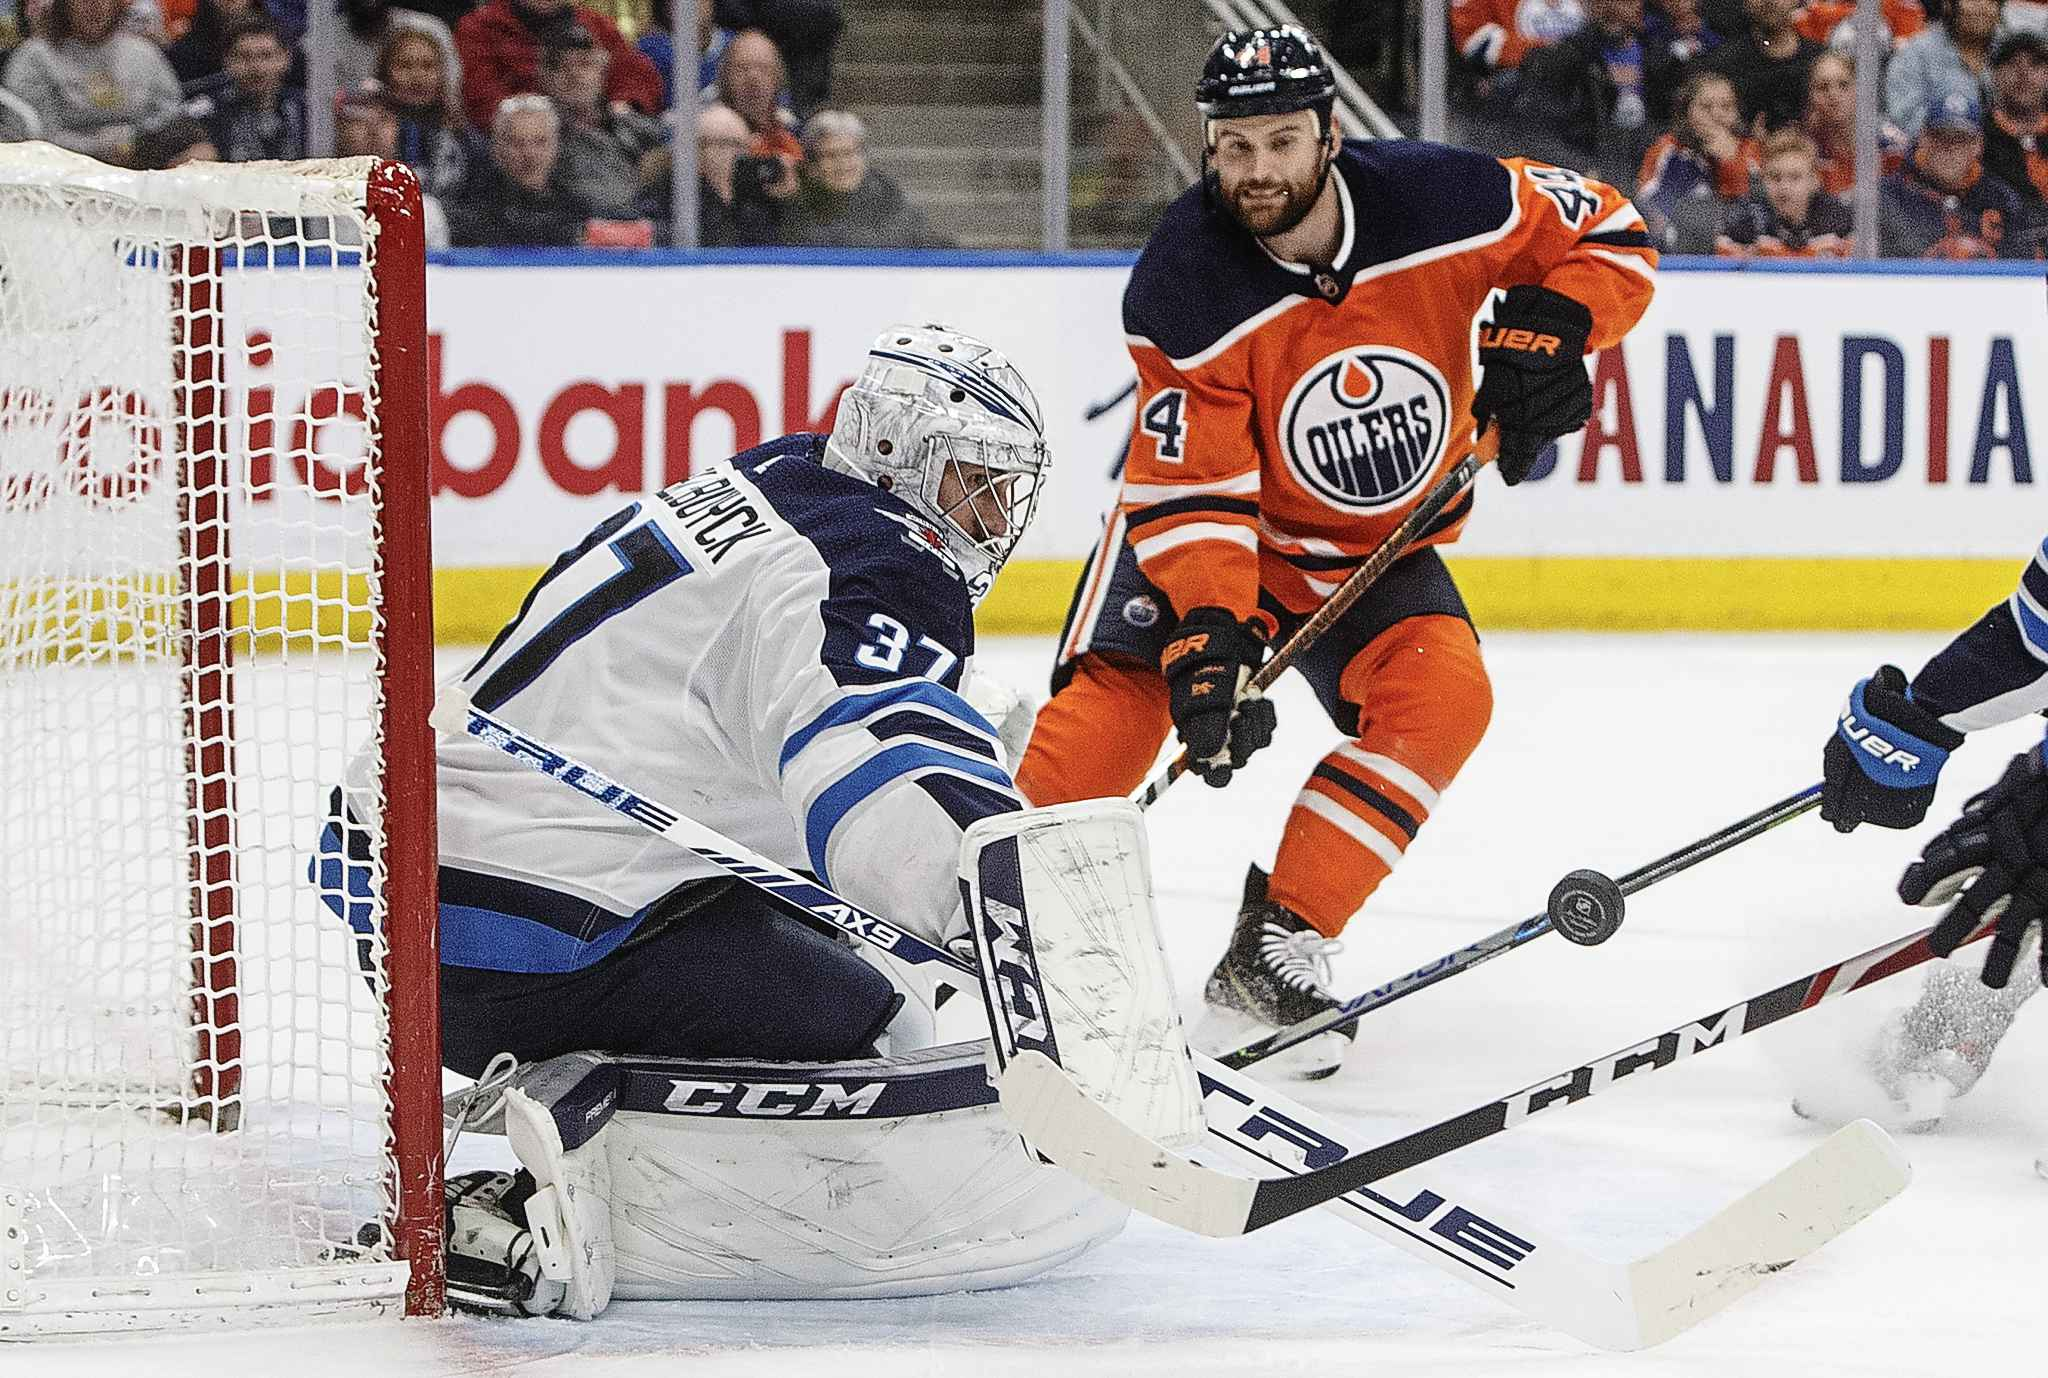 Jets goalie Connor Hellebuyck makes a save as Edmonton Oilers' Zack Kassian looks for the rebound during the second period.